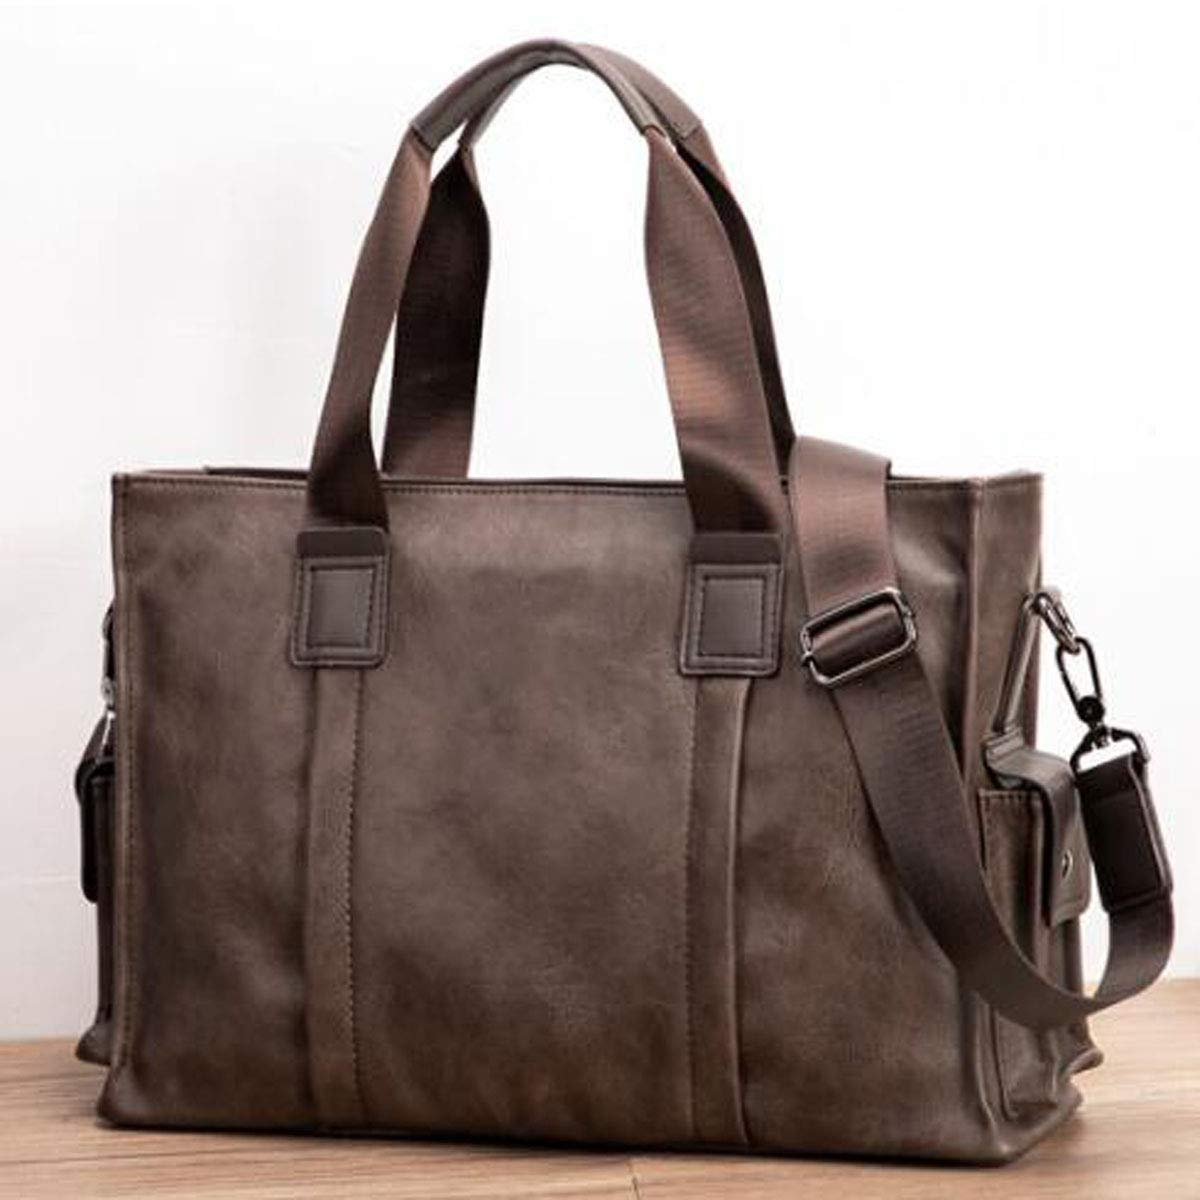 Large Capacity Messenger Bag Trend Retro Casual Business Tote Khaki Size: 40.711.627.3cm Very Beautiful Color : Dark Coffee Xingganglengyin Briefcase Color : Dark Coffee